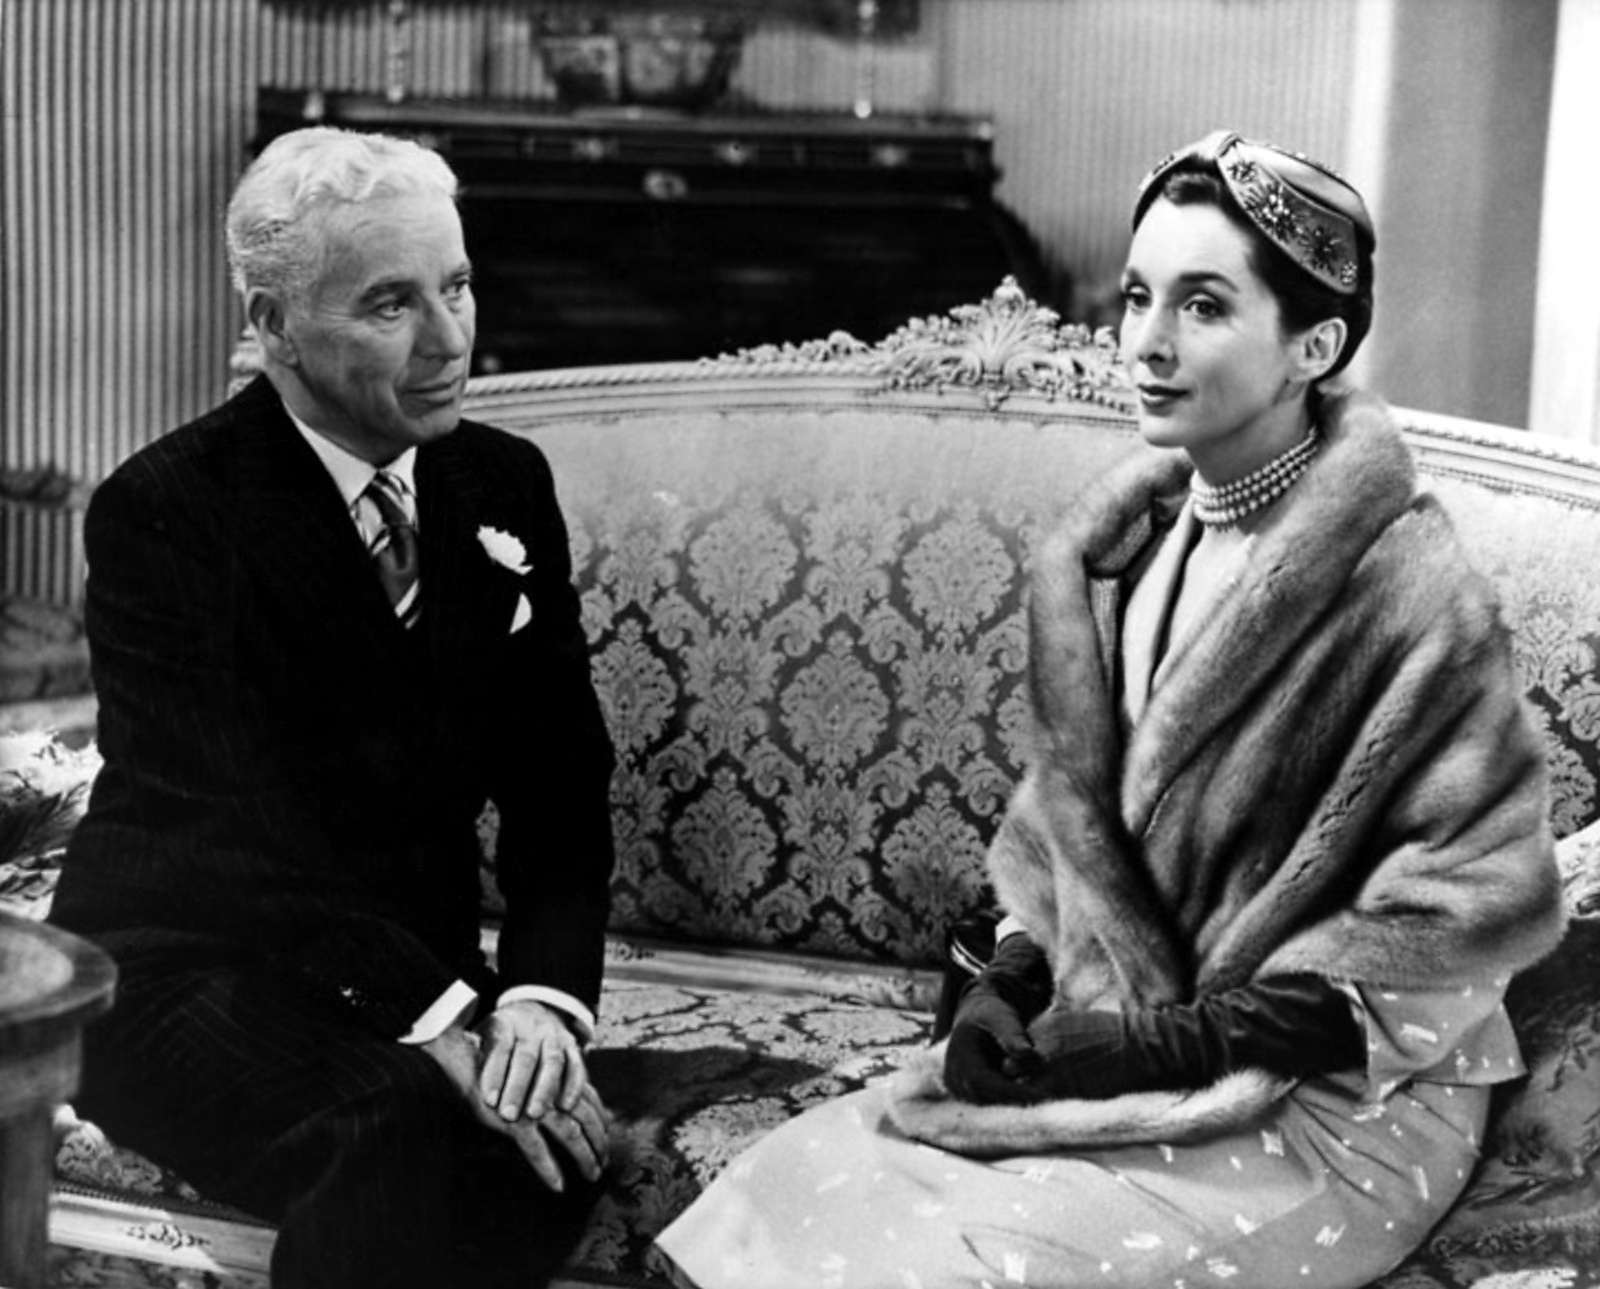 Charlie Chaplin with Maxine Audley